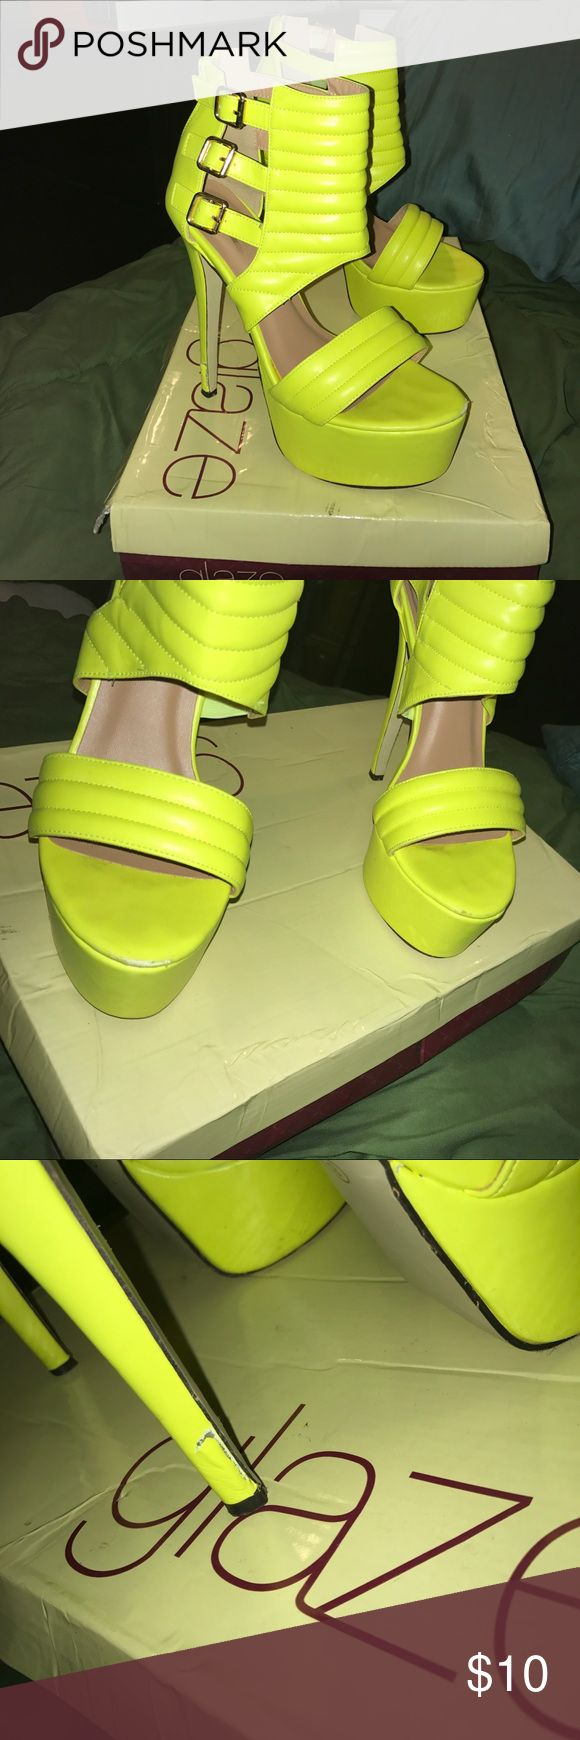 Neon yellow shoes Sexy neon heels with some flaws but I still wear them out and get compliments on them all the time. Love these babies Shoes Heels